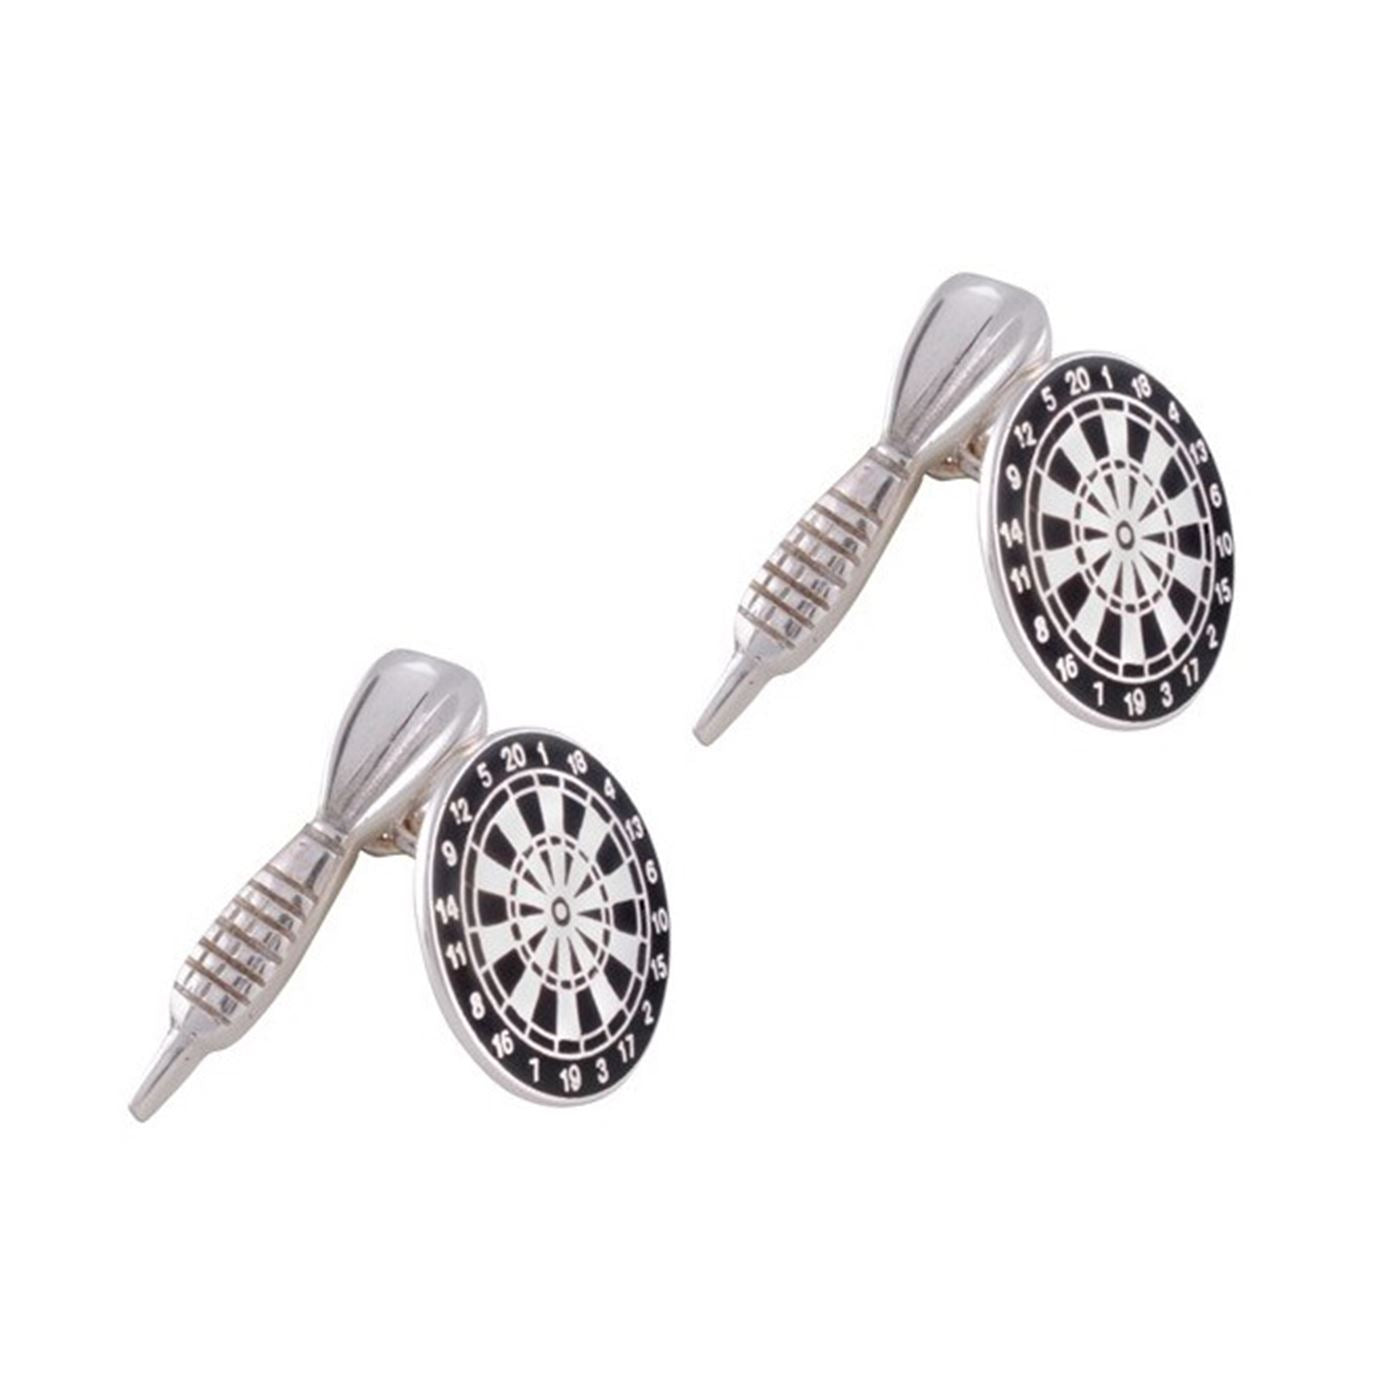 fe0ac232dd35 Sterling Silver Black Enamel Dart and Dartboard Cufflinks. Touch to zoom